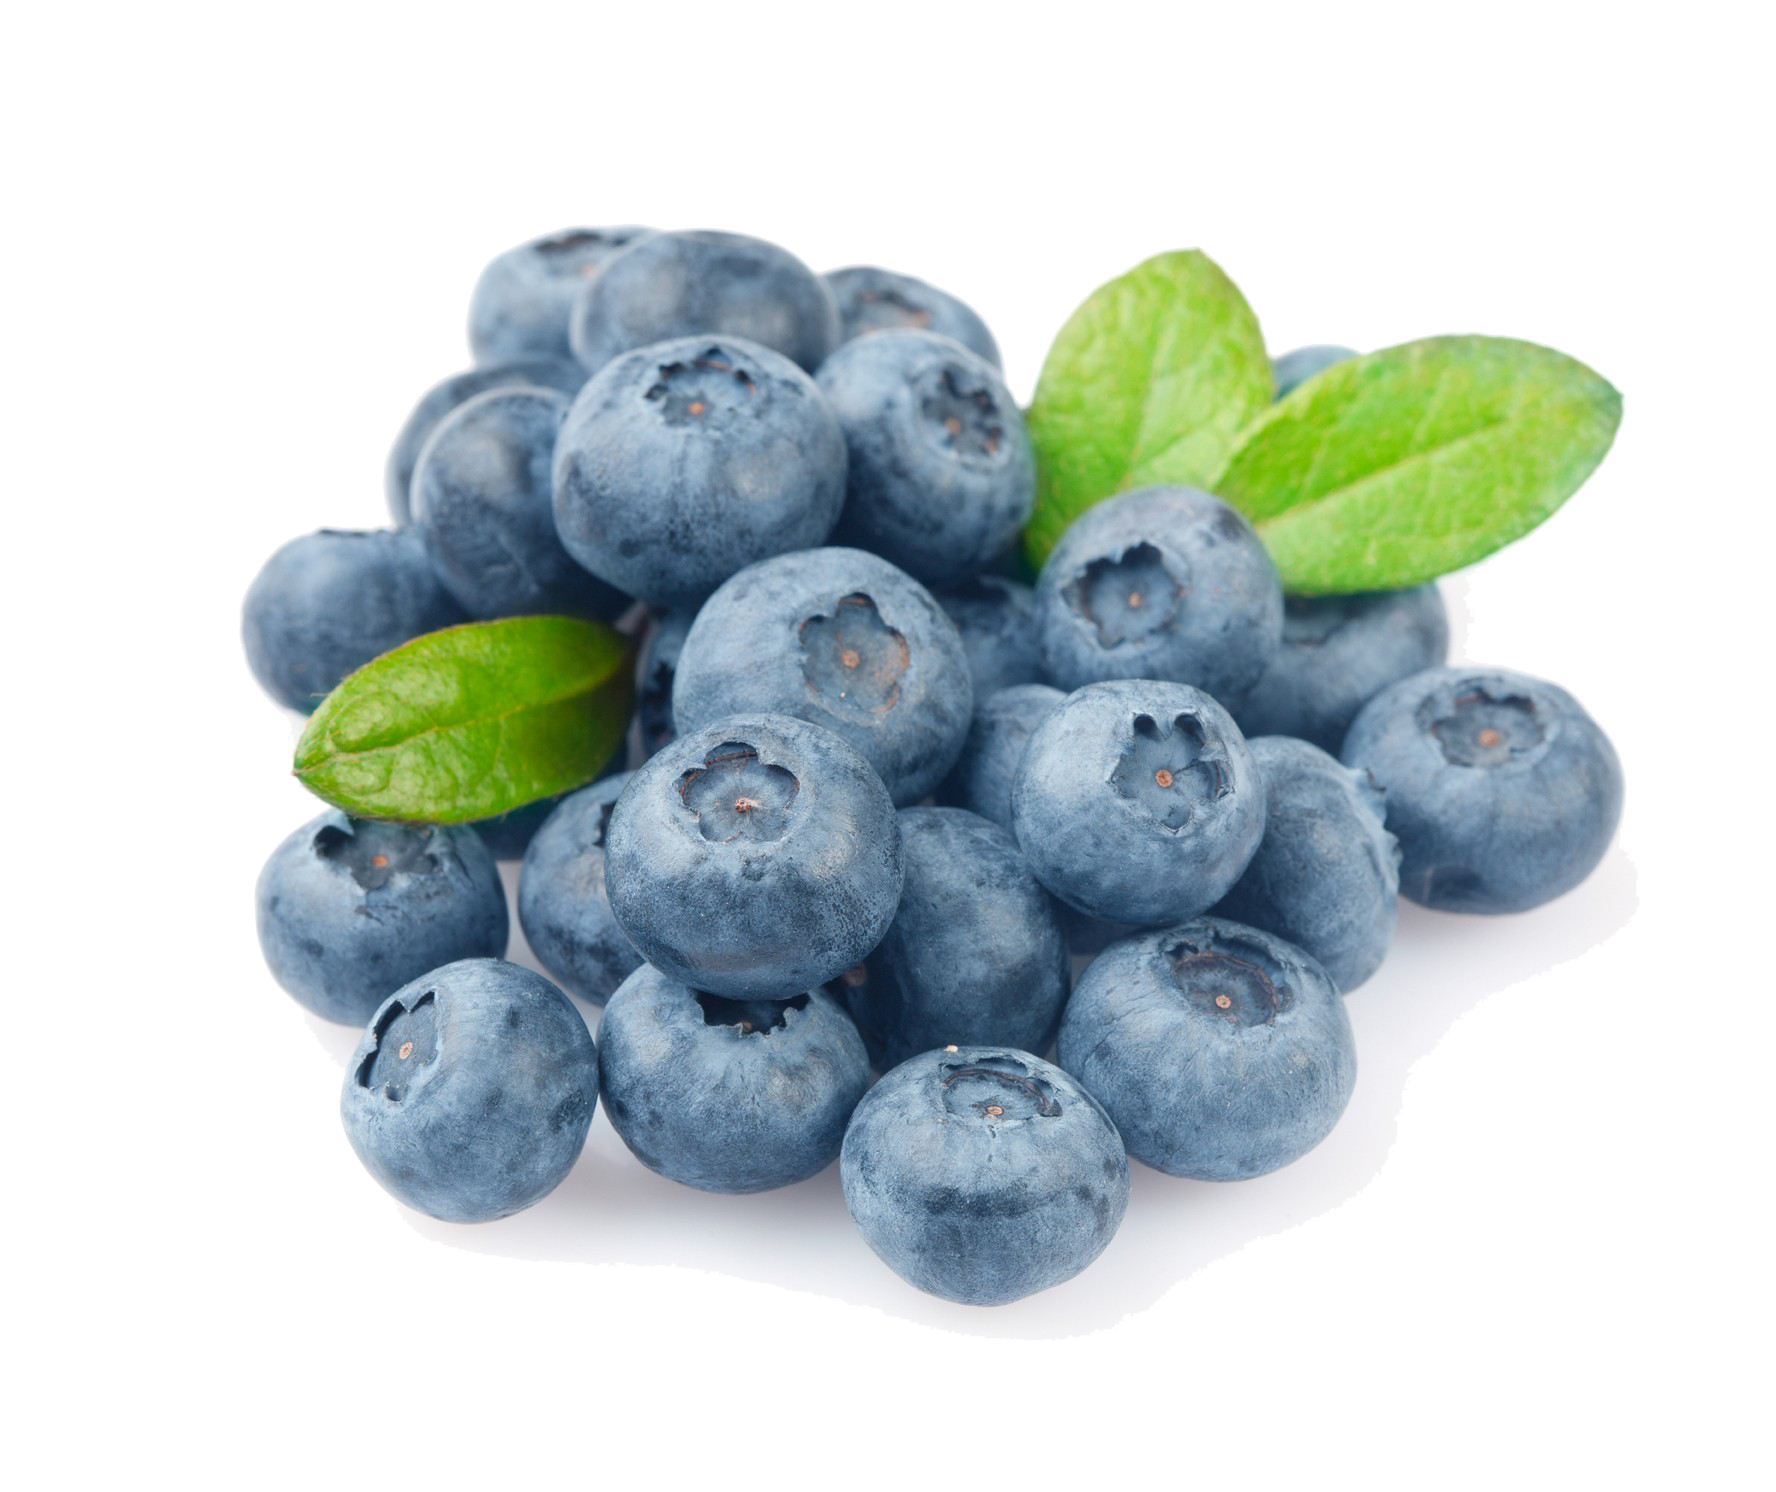 Blueberries clipart blue food. Blueberry png images transparent